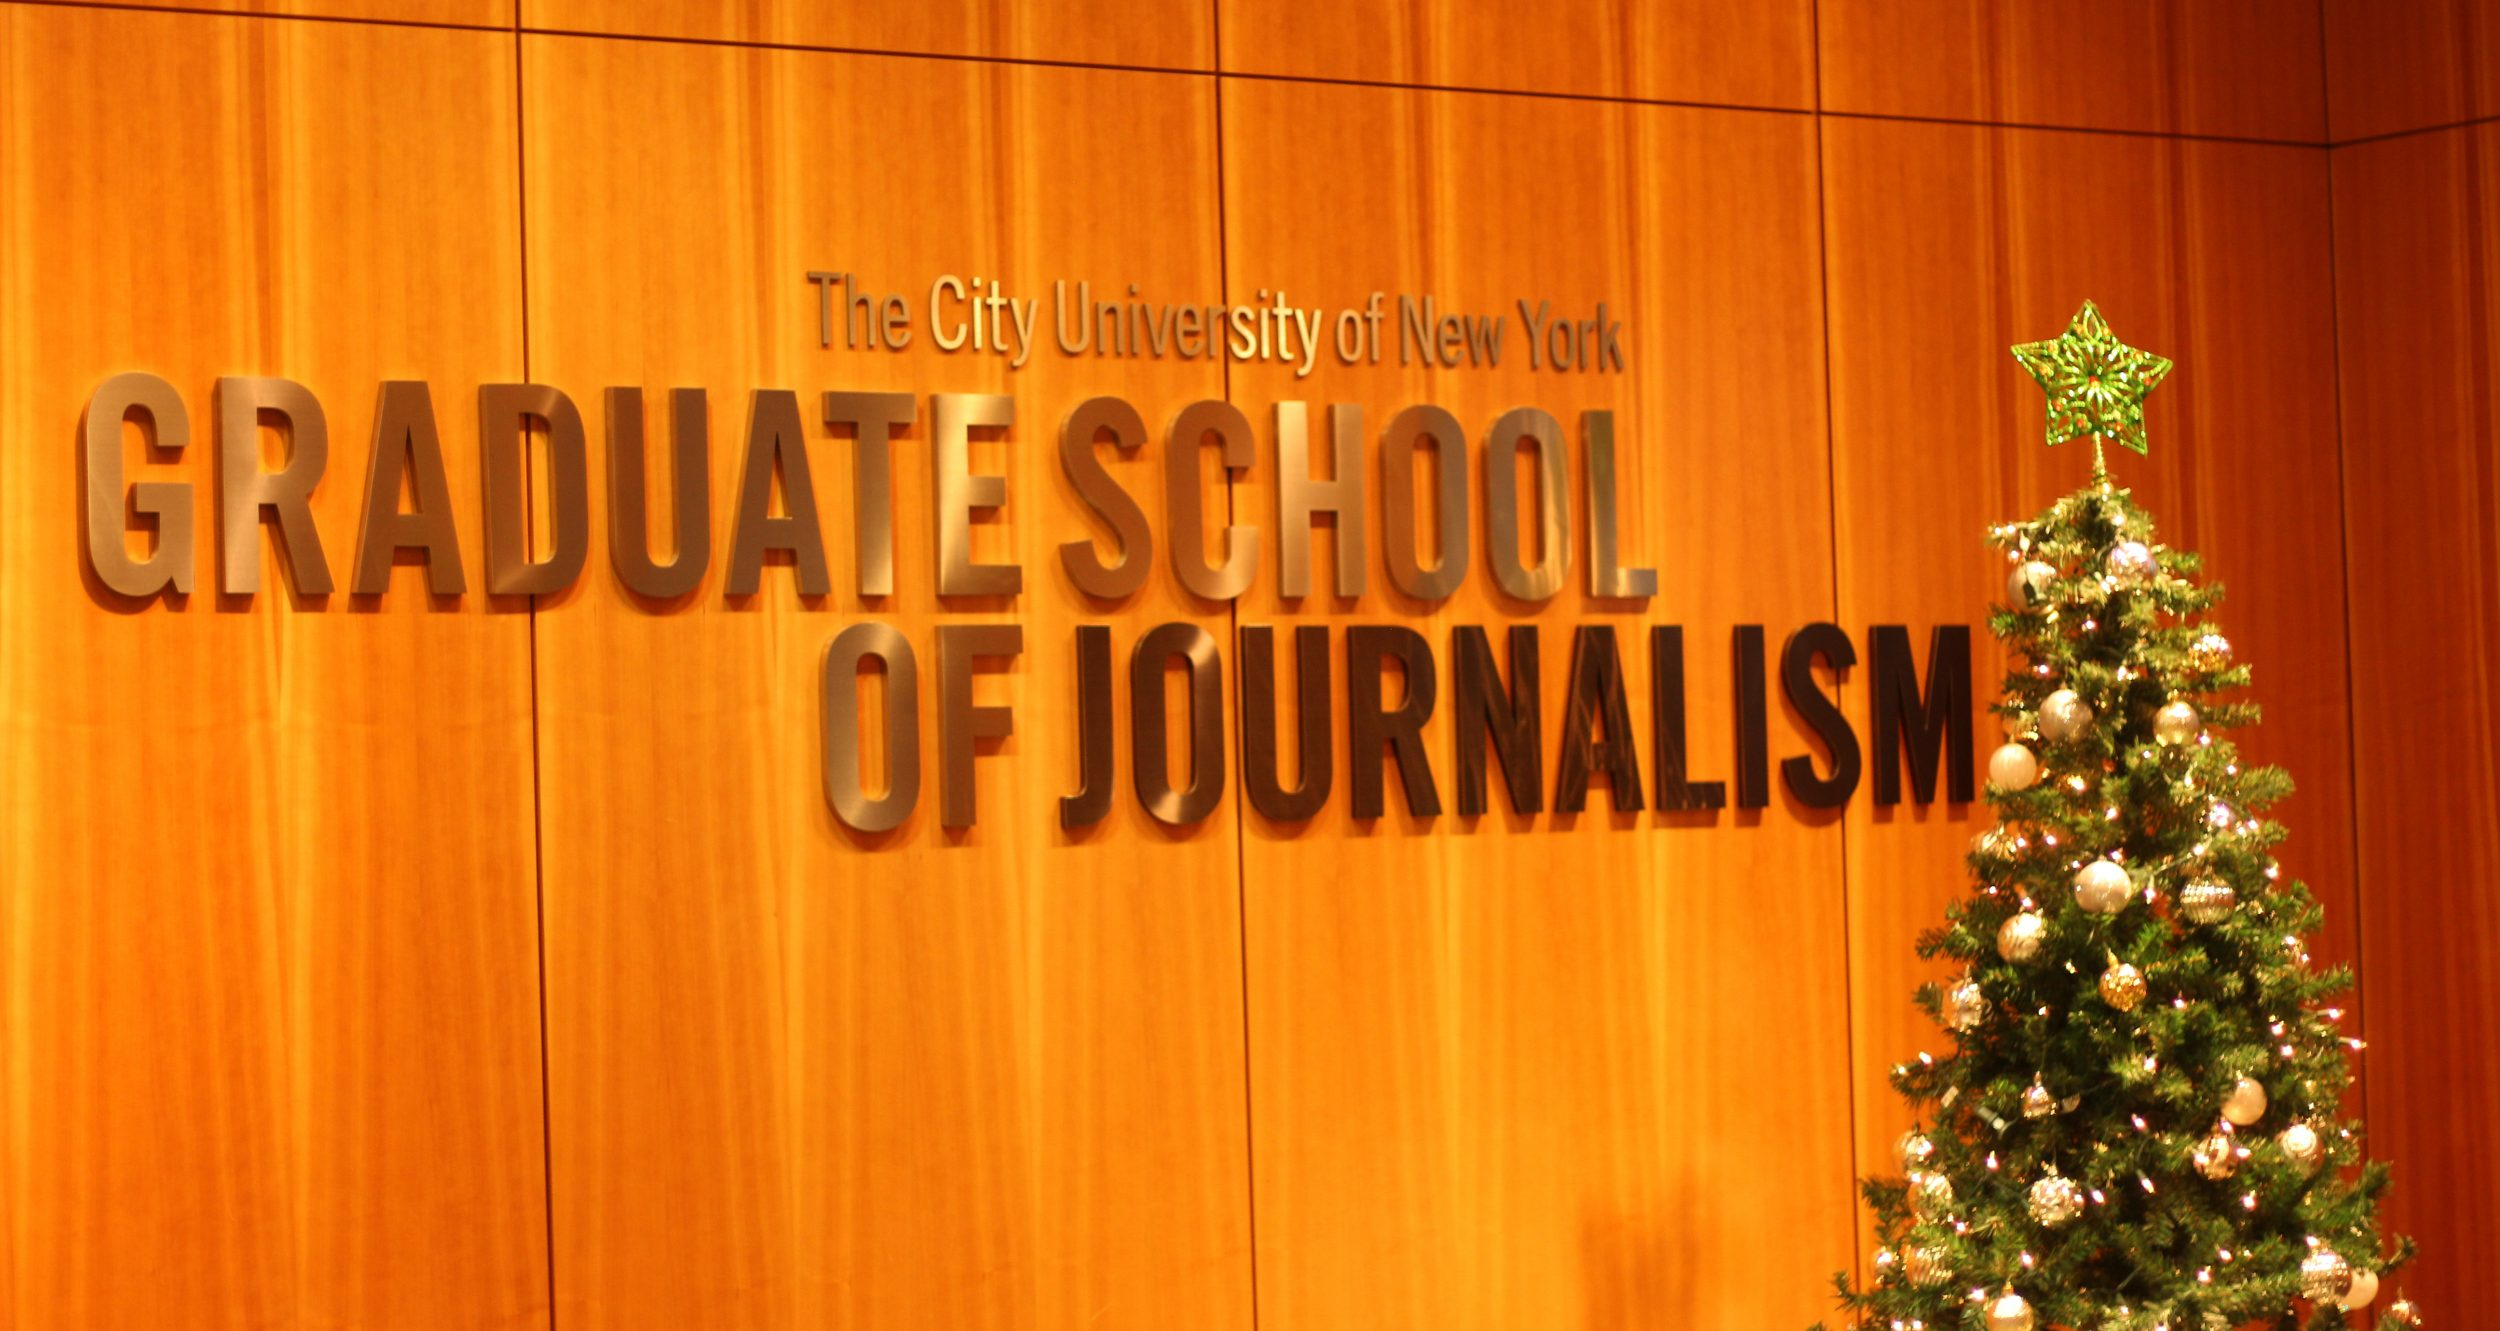 The students enjoyed a fascinating visit to the Graduate School of Journalism at The City University of New York (CUNY).